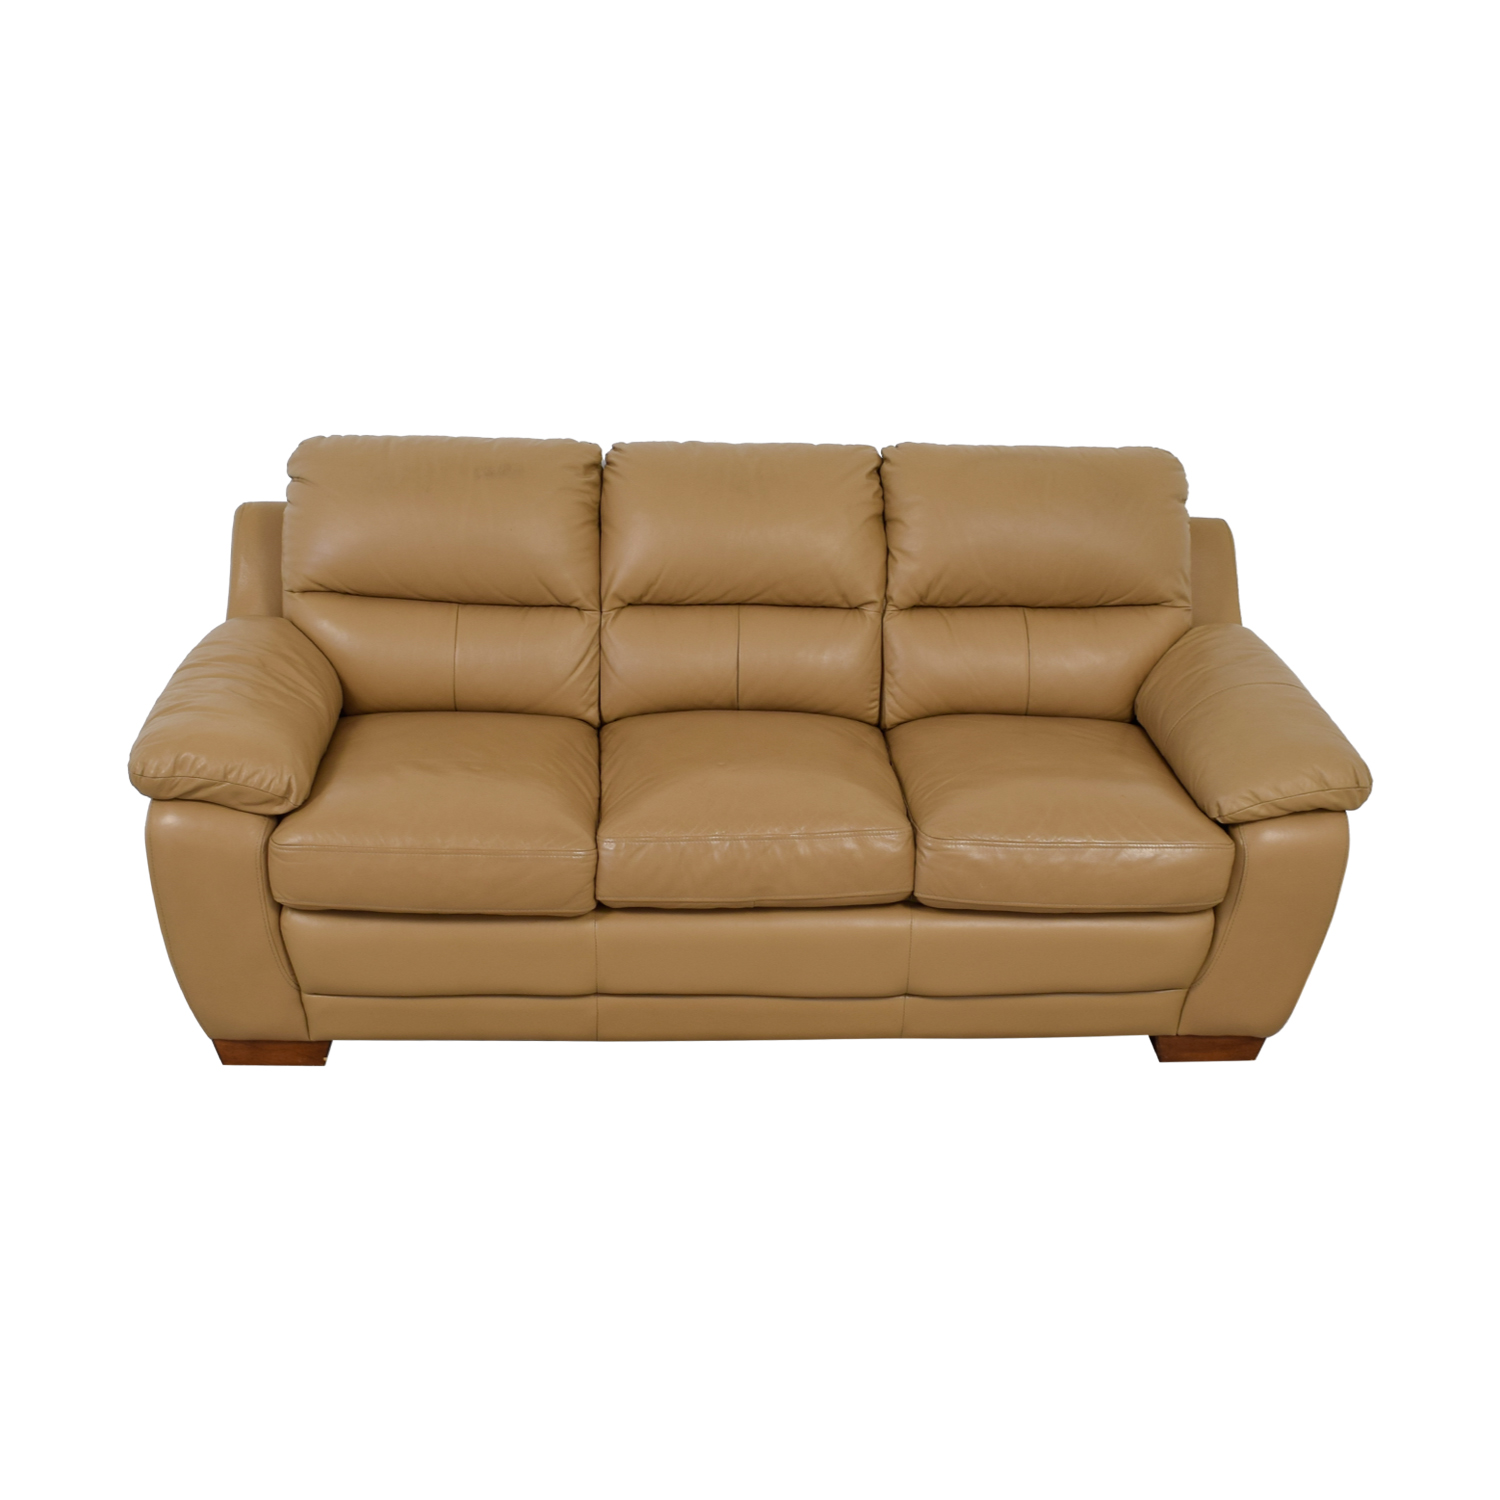 buy Raymour & Flanigan Tan Leather Three-Cushion Sofa Raymour & Flanigan Loveseats